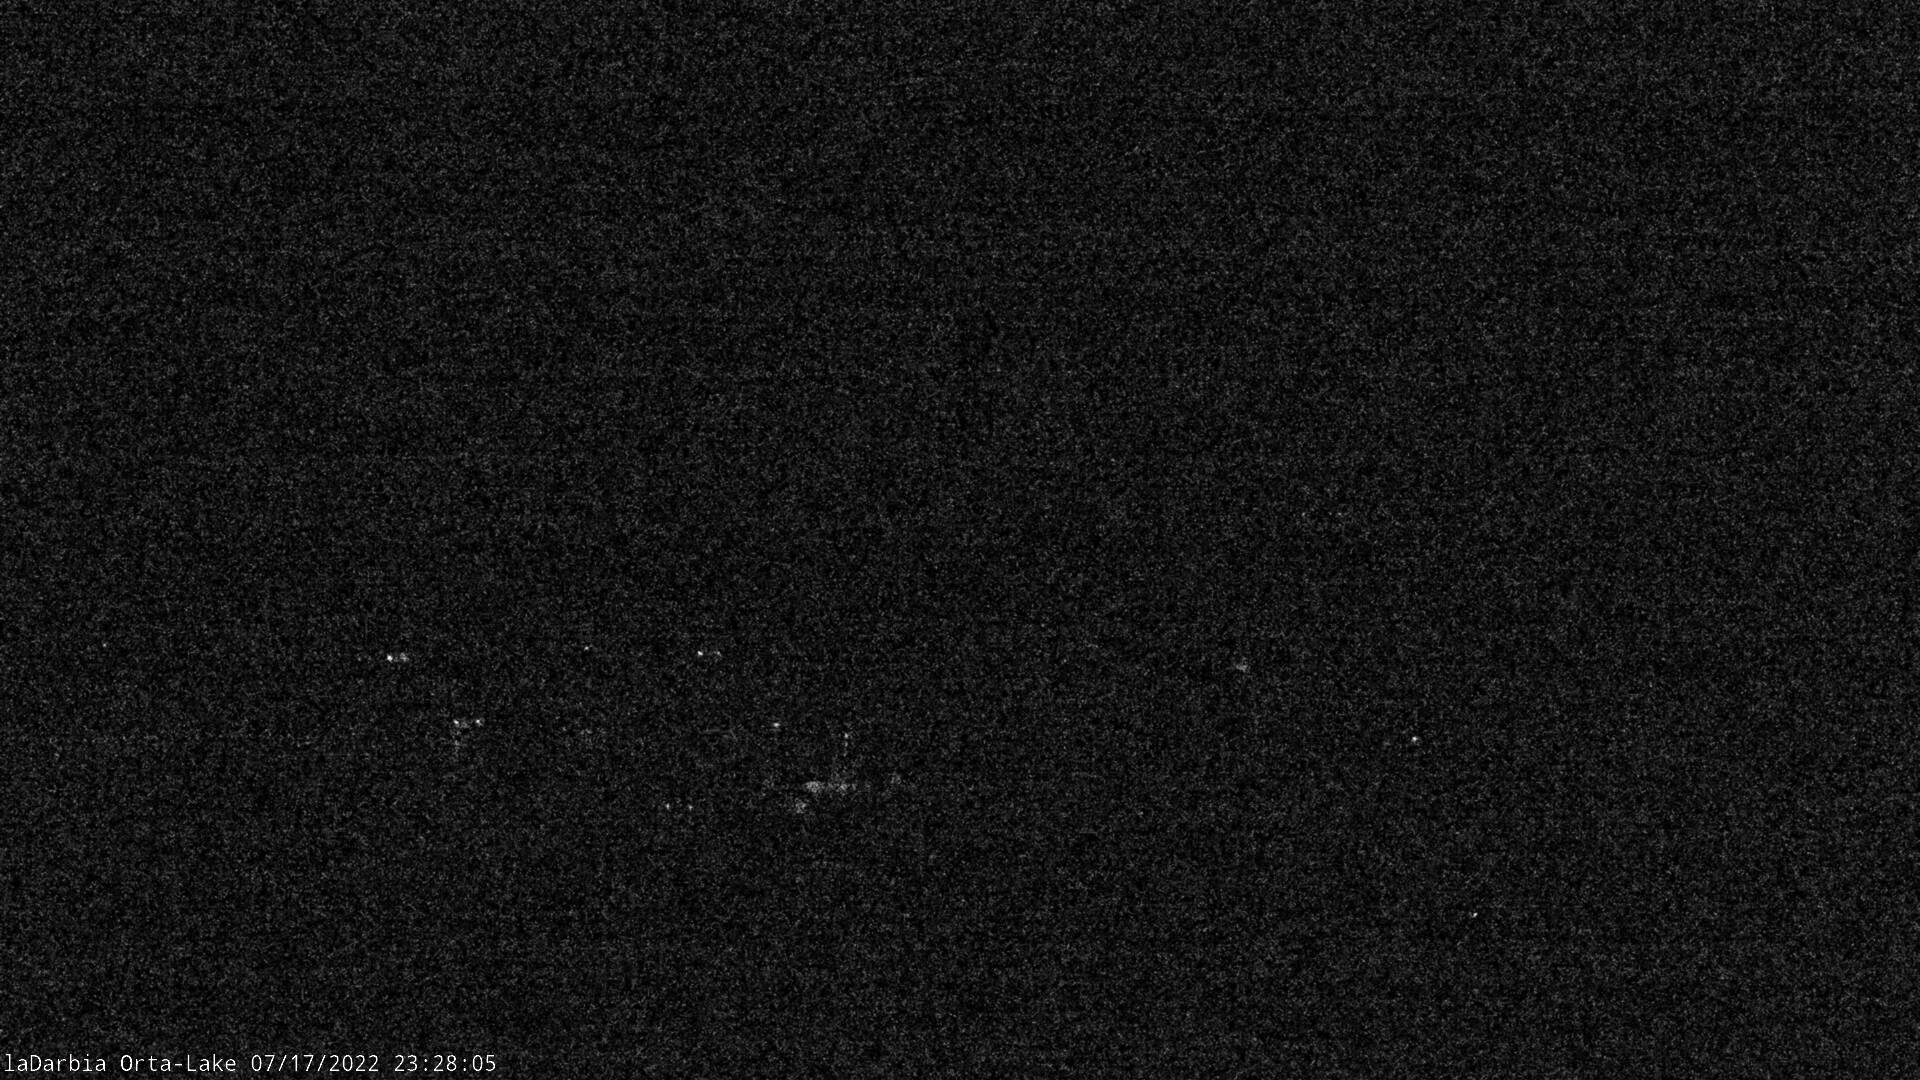 Webcam lago d'orta